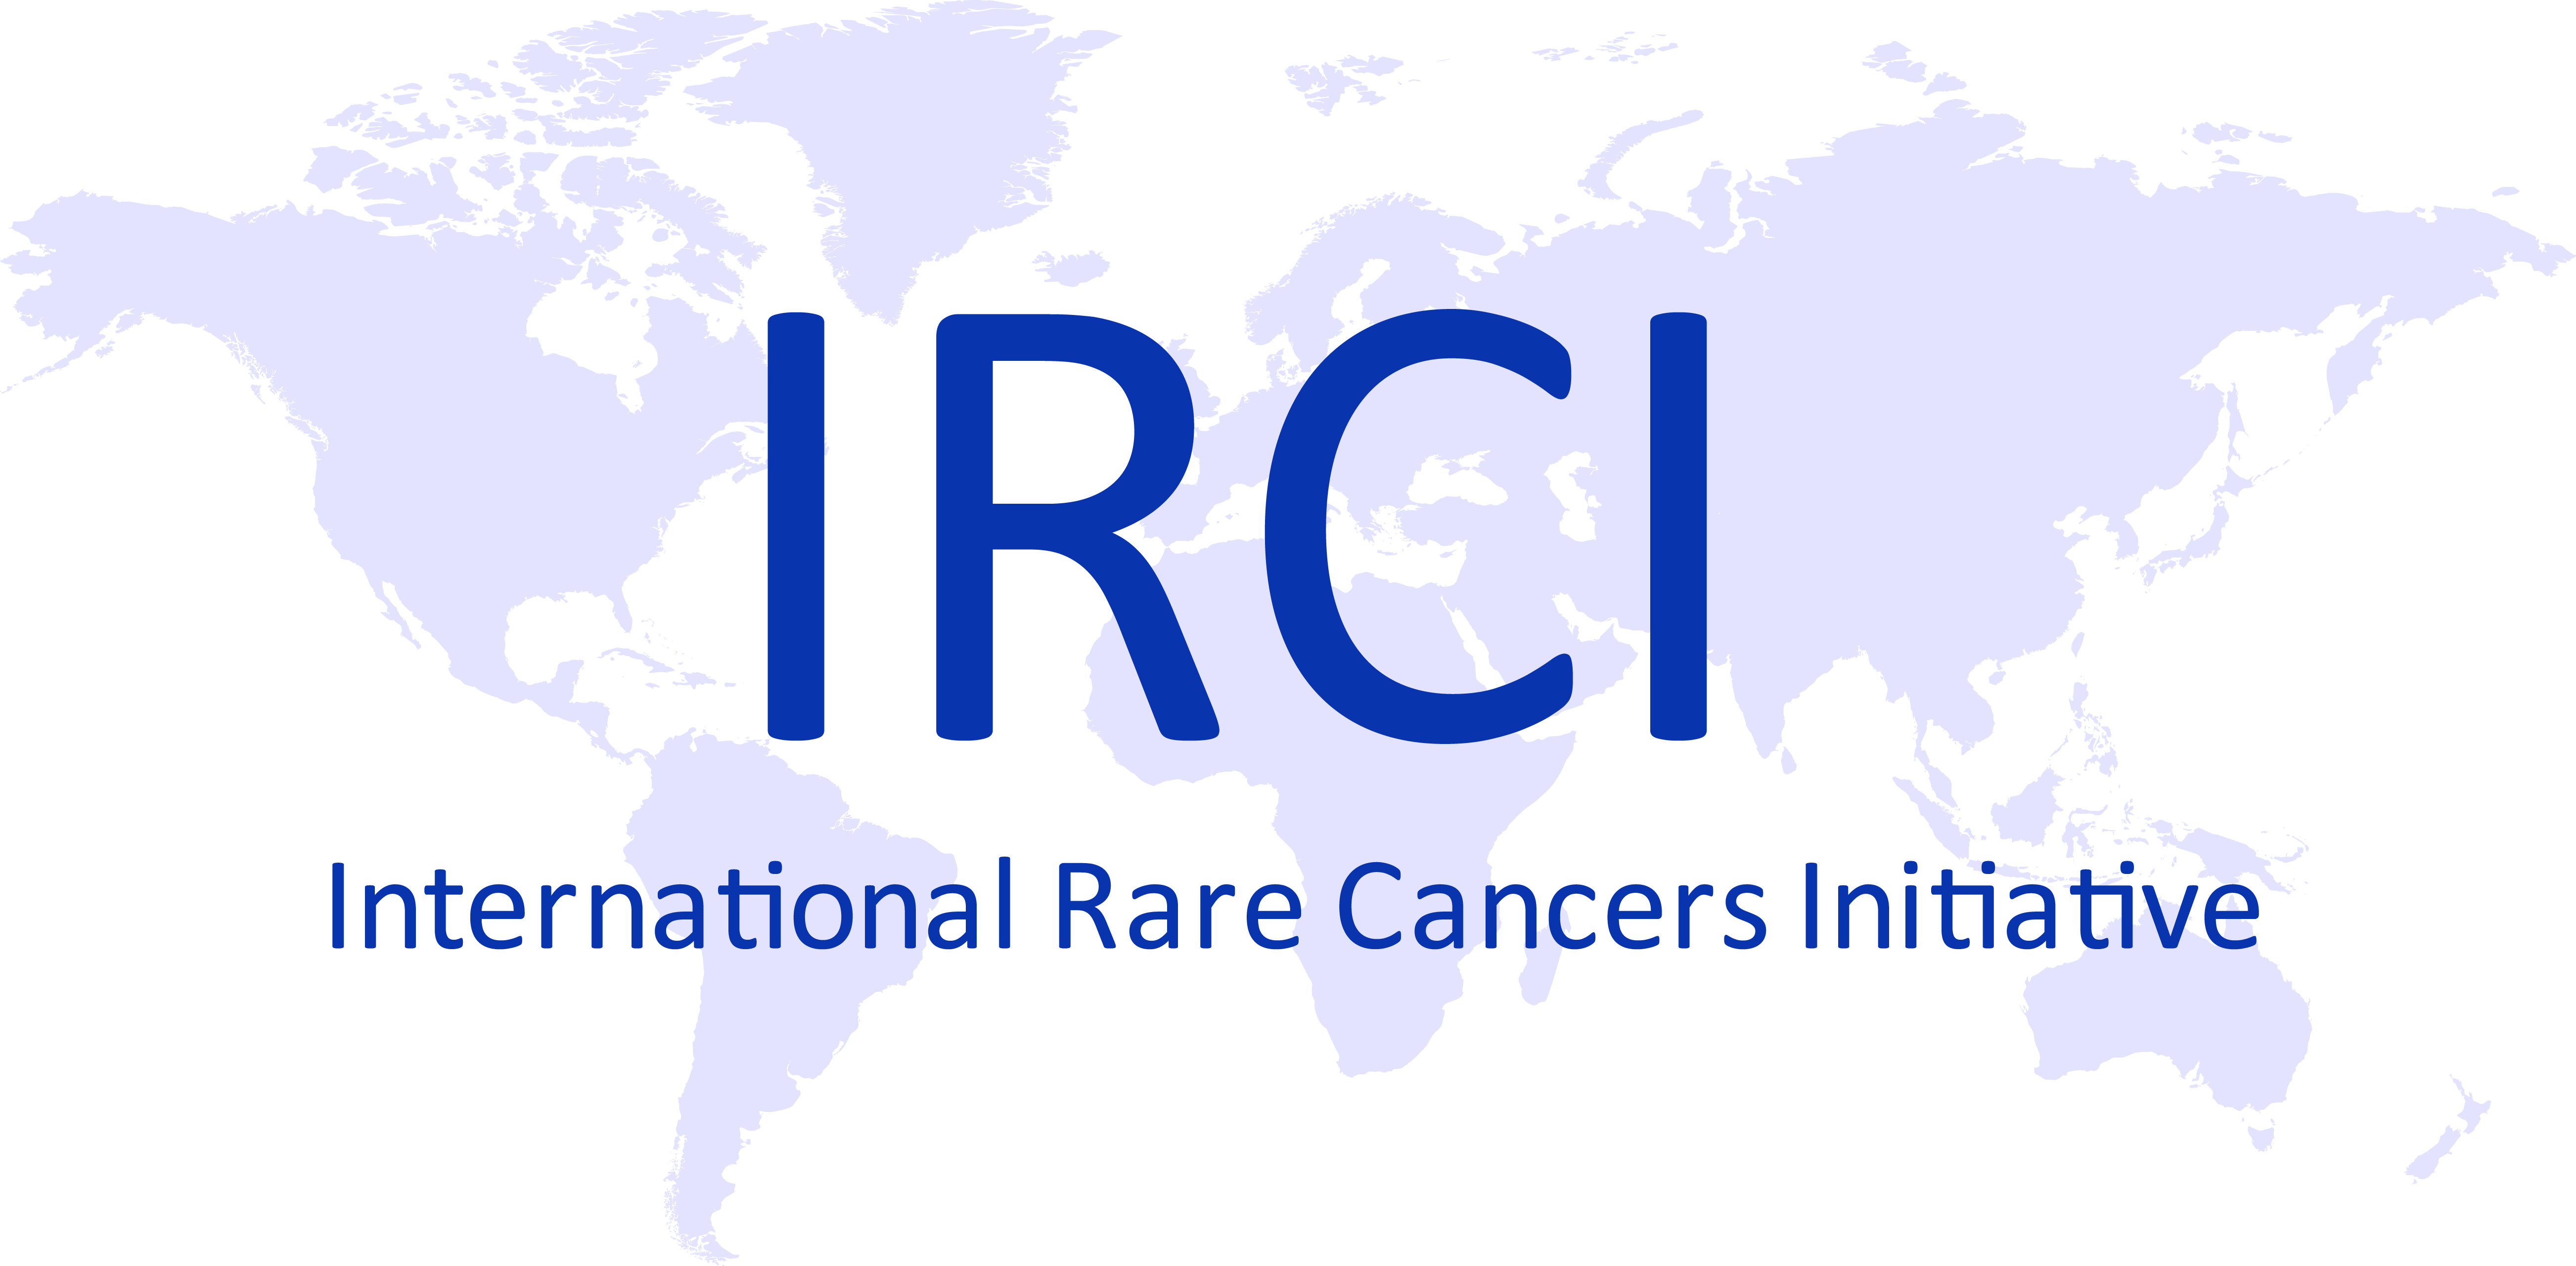 International Rare Cancers Initiative